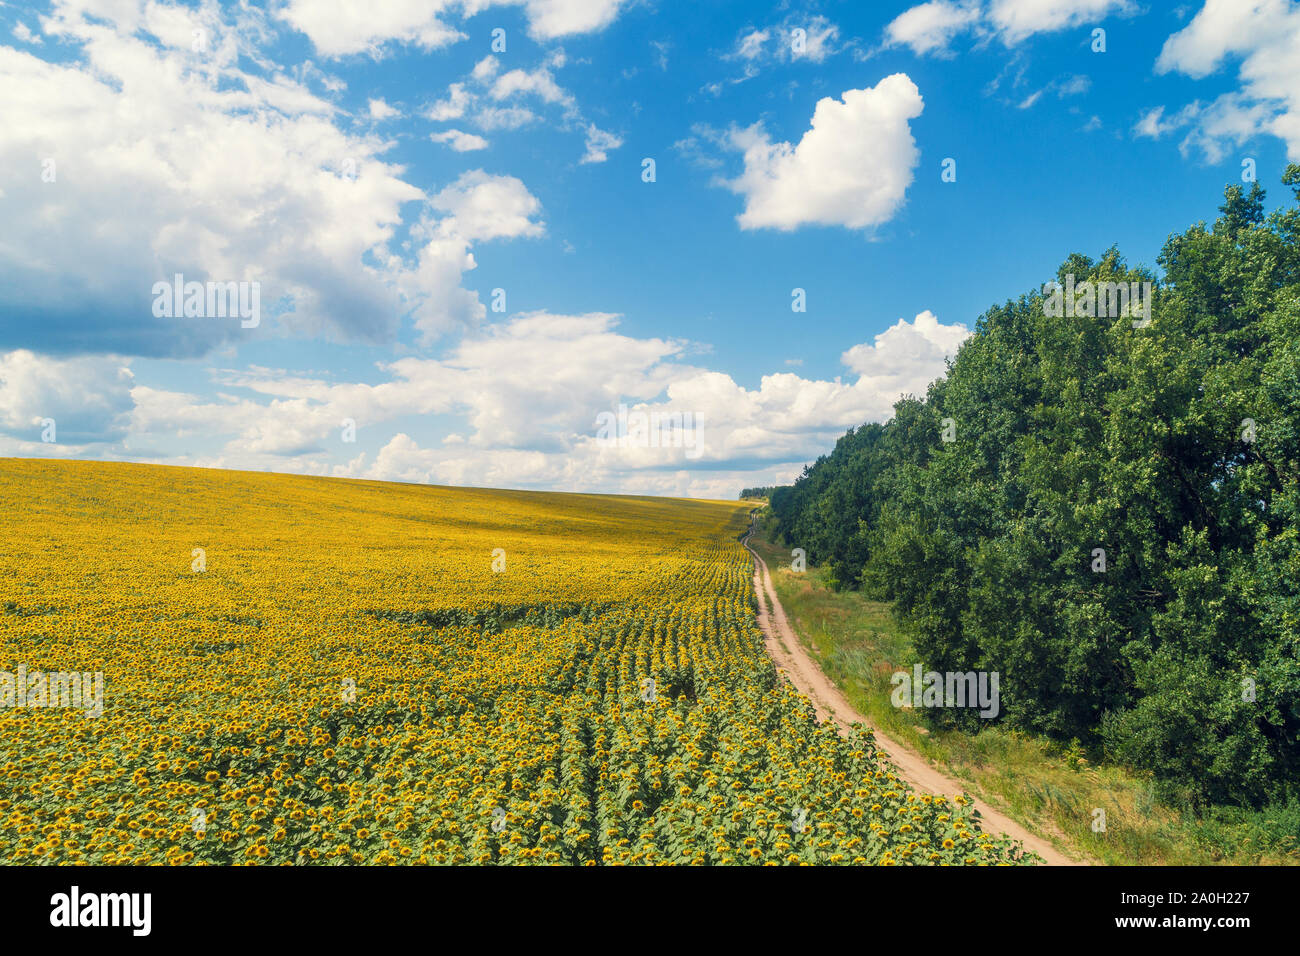 Rural dirt road along the field of sunflowers. Picturesque sunflower field, top view. The rural landscape on a summer sunny day. Nature background Stock Photo